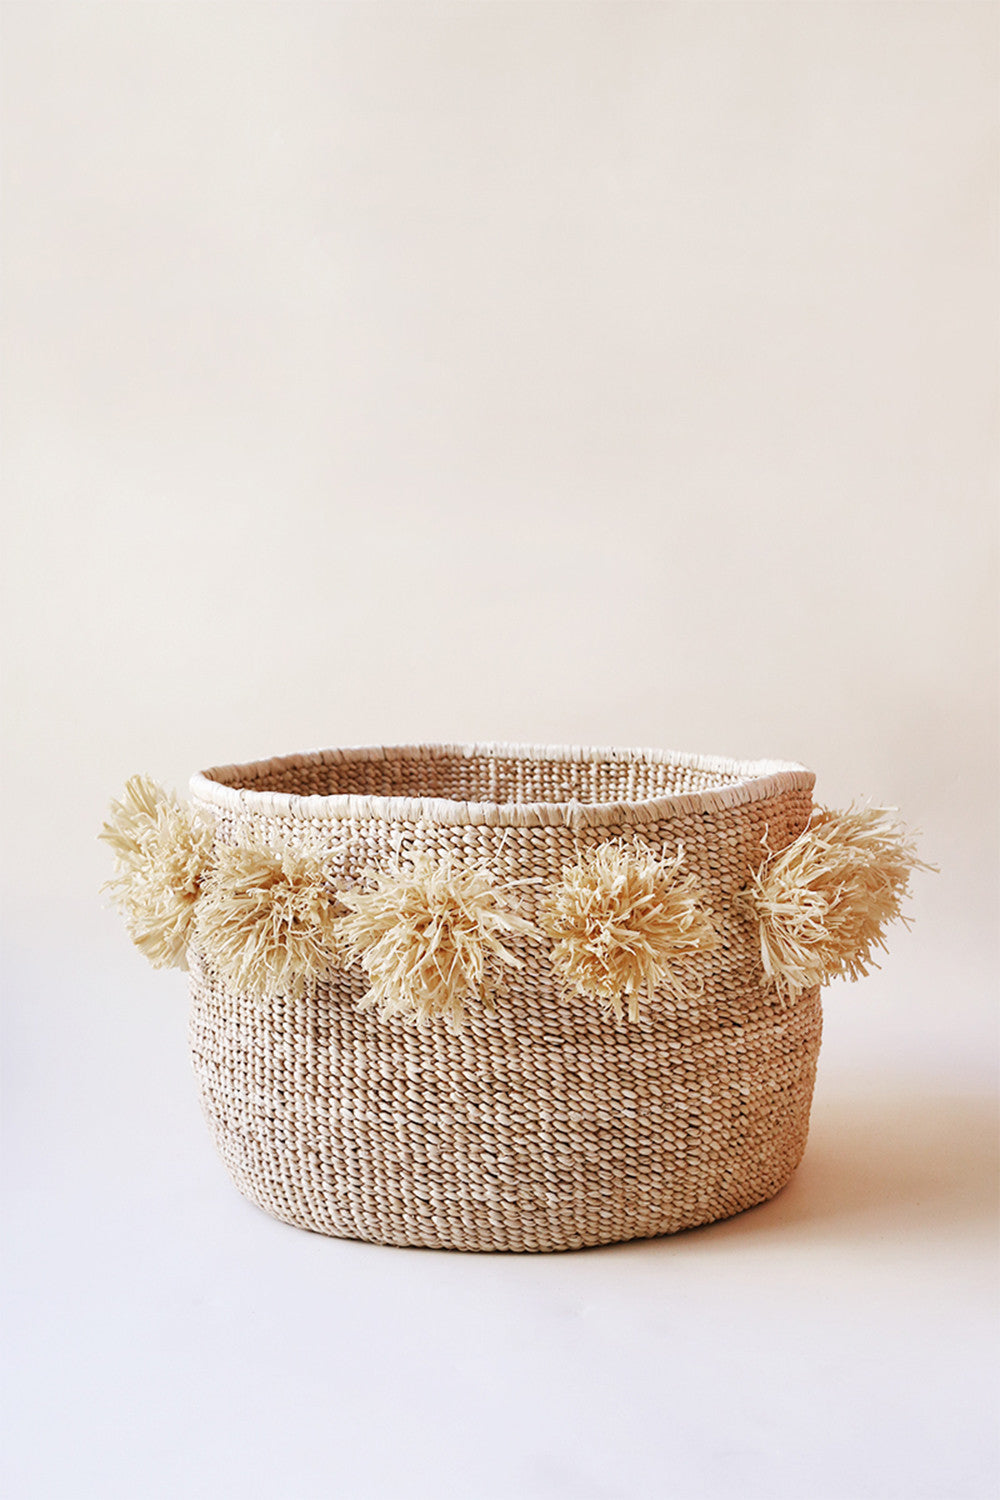 Pom Pom Banana Leaf Floor Basket in Natural